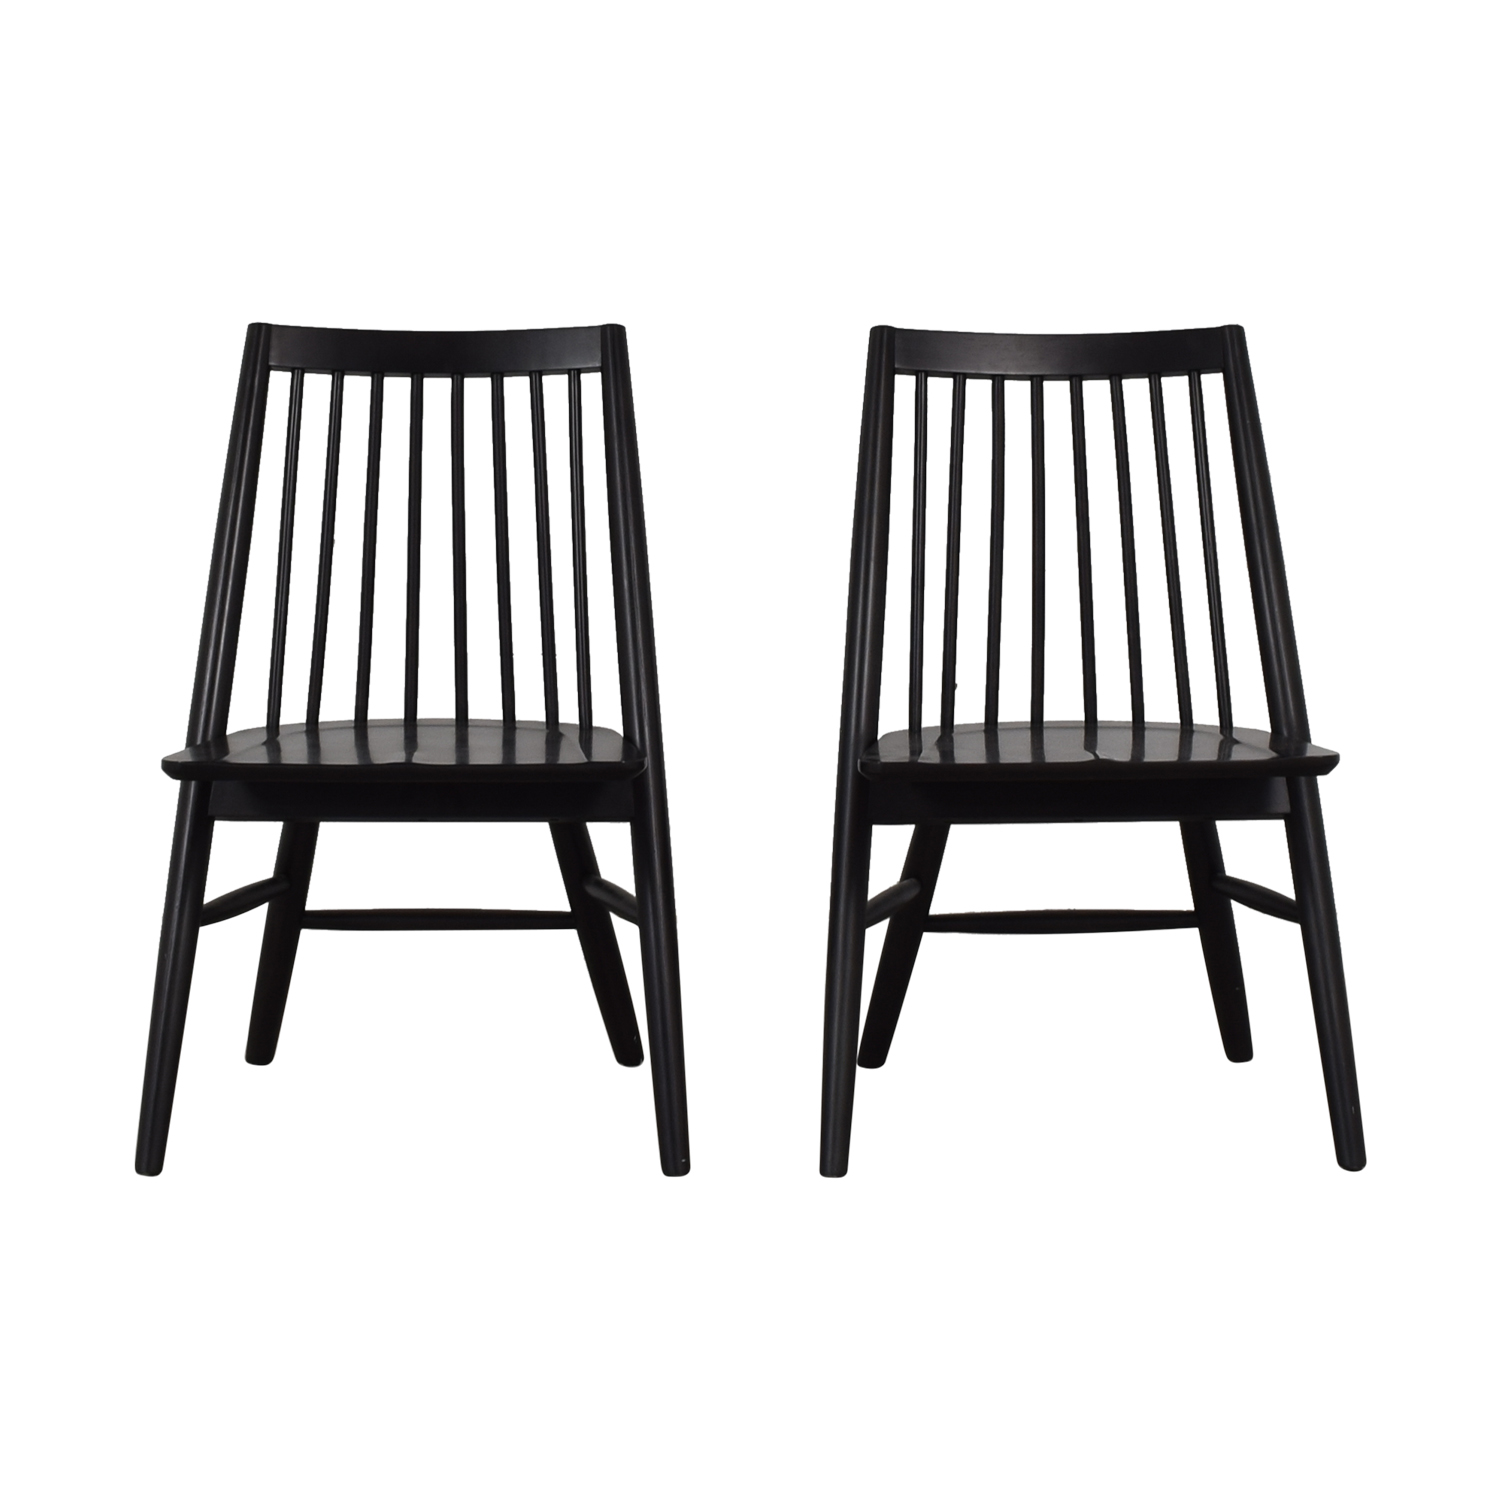 West Elm Black Spindle Chairs / Chairs